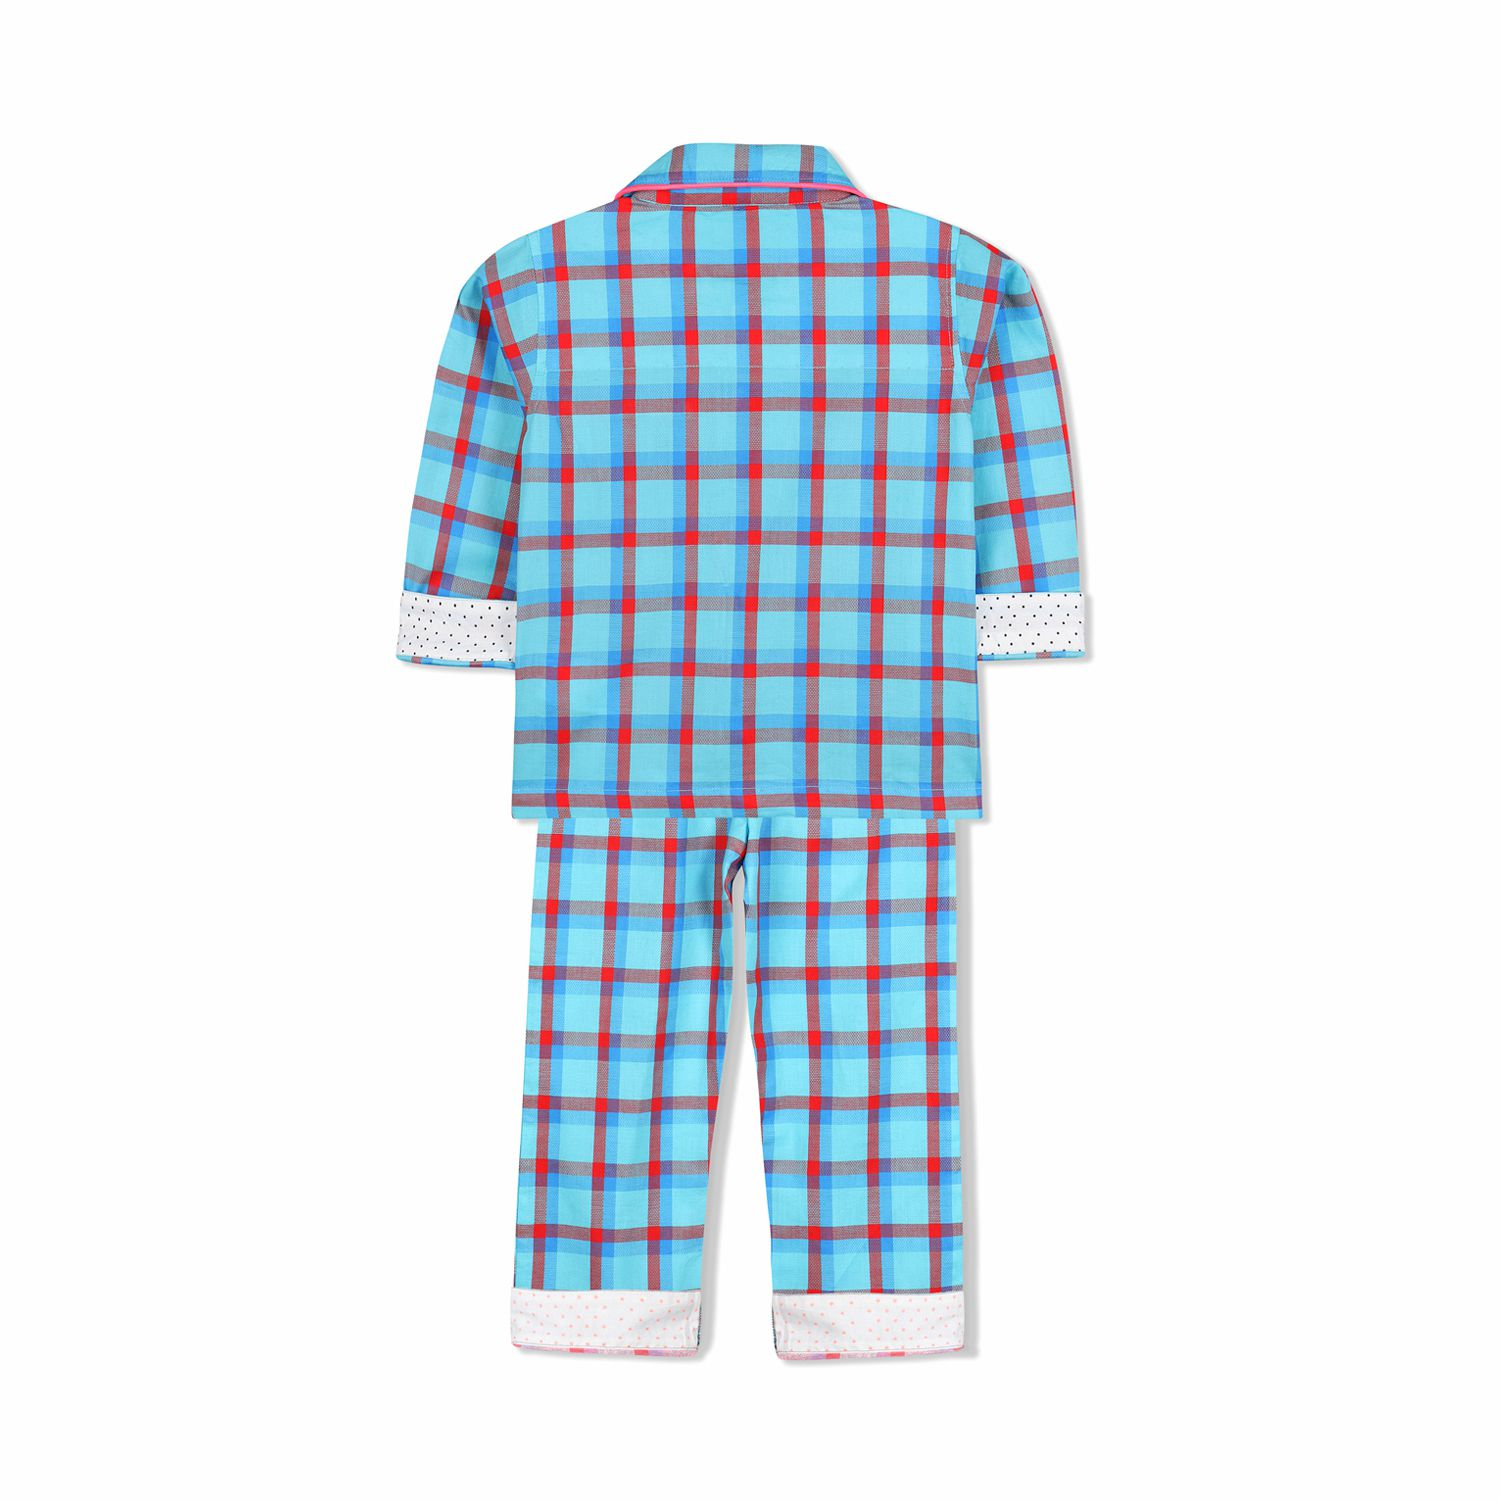 c0f1185a60d Cherry Crumble Casual Checkered Night Suit Cherry Crumble Casual Checkered Night  Suit ...